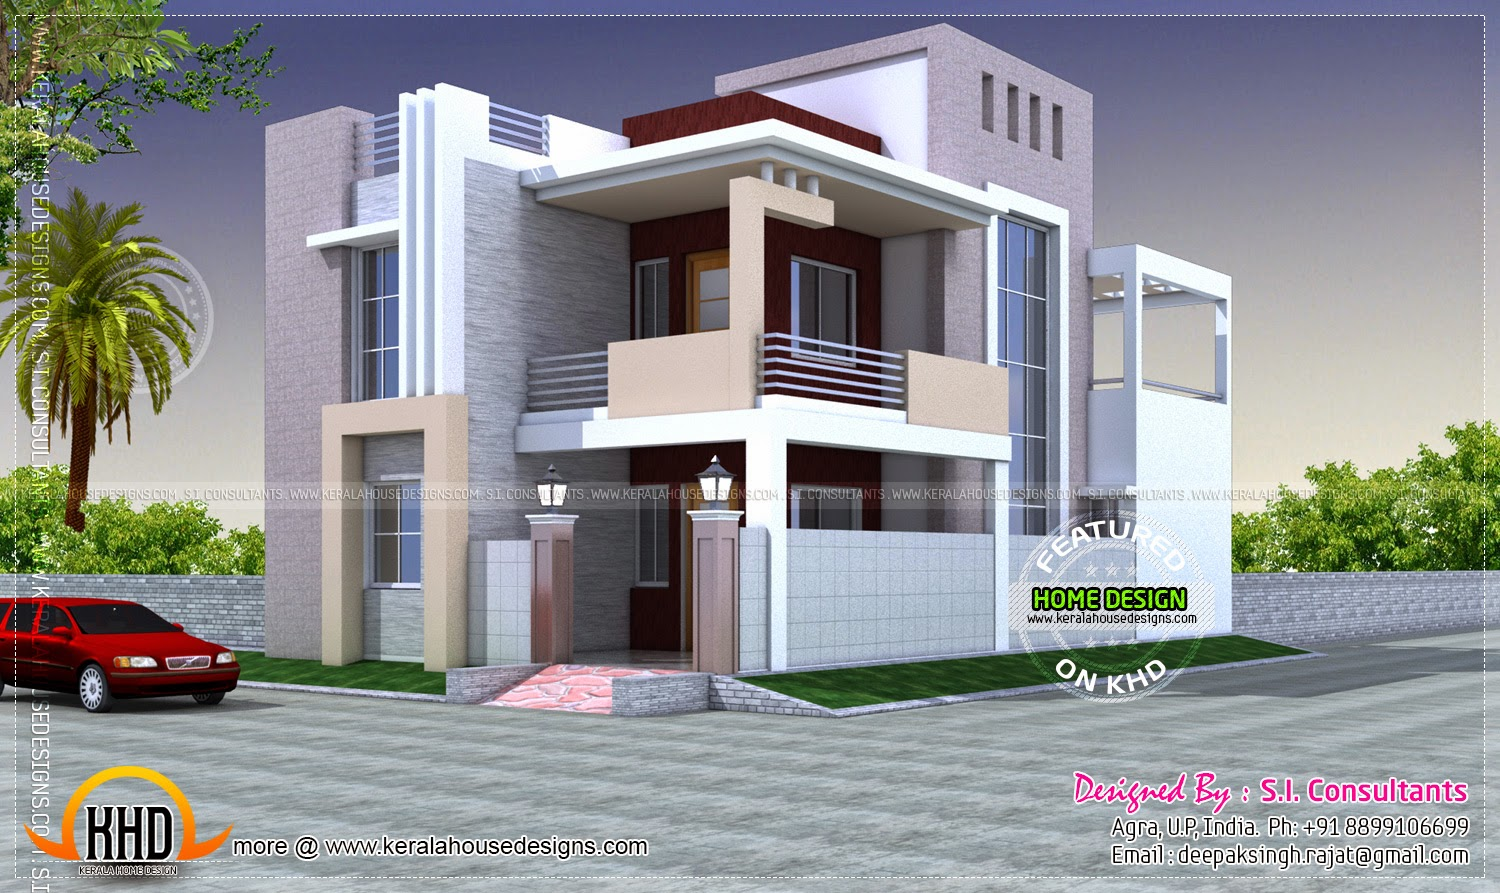 Modern Front Elevation Images : House exterior elevation modern style kerala home design